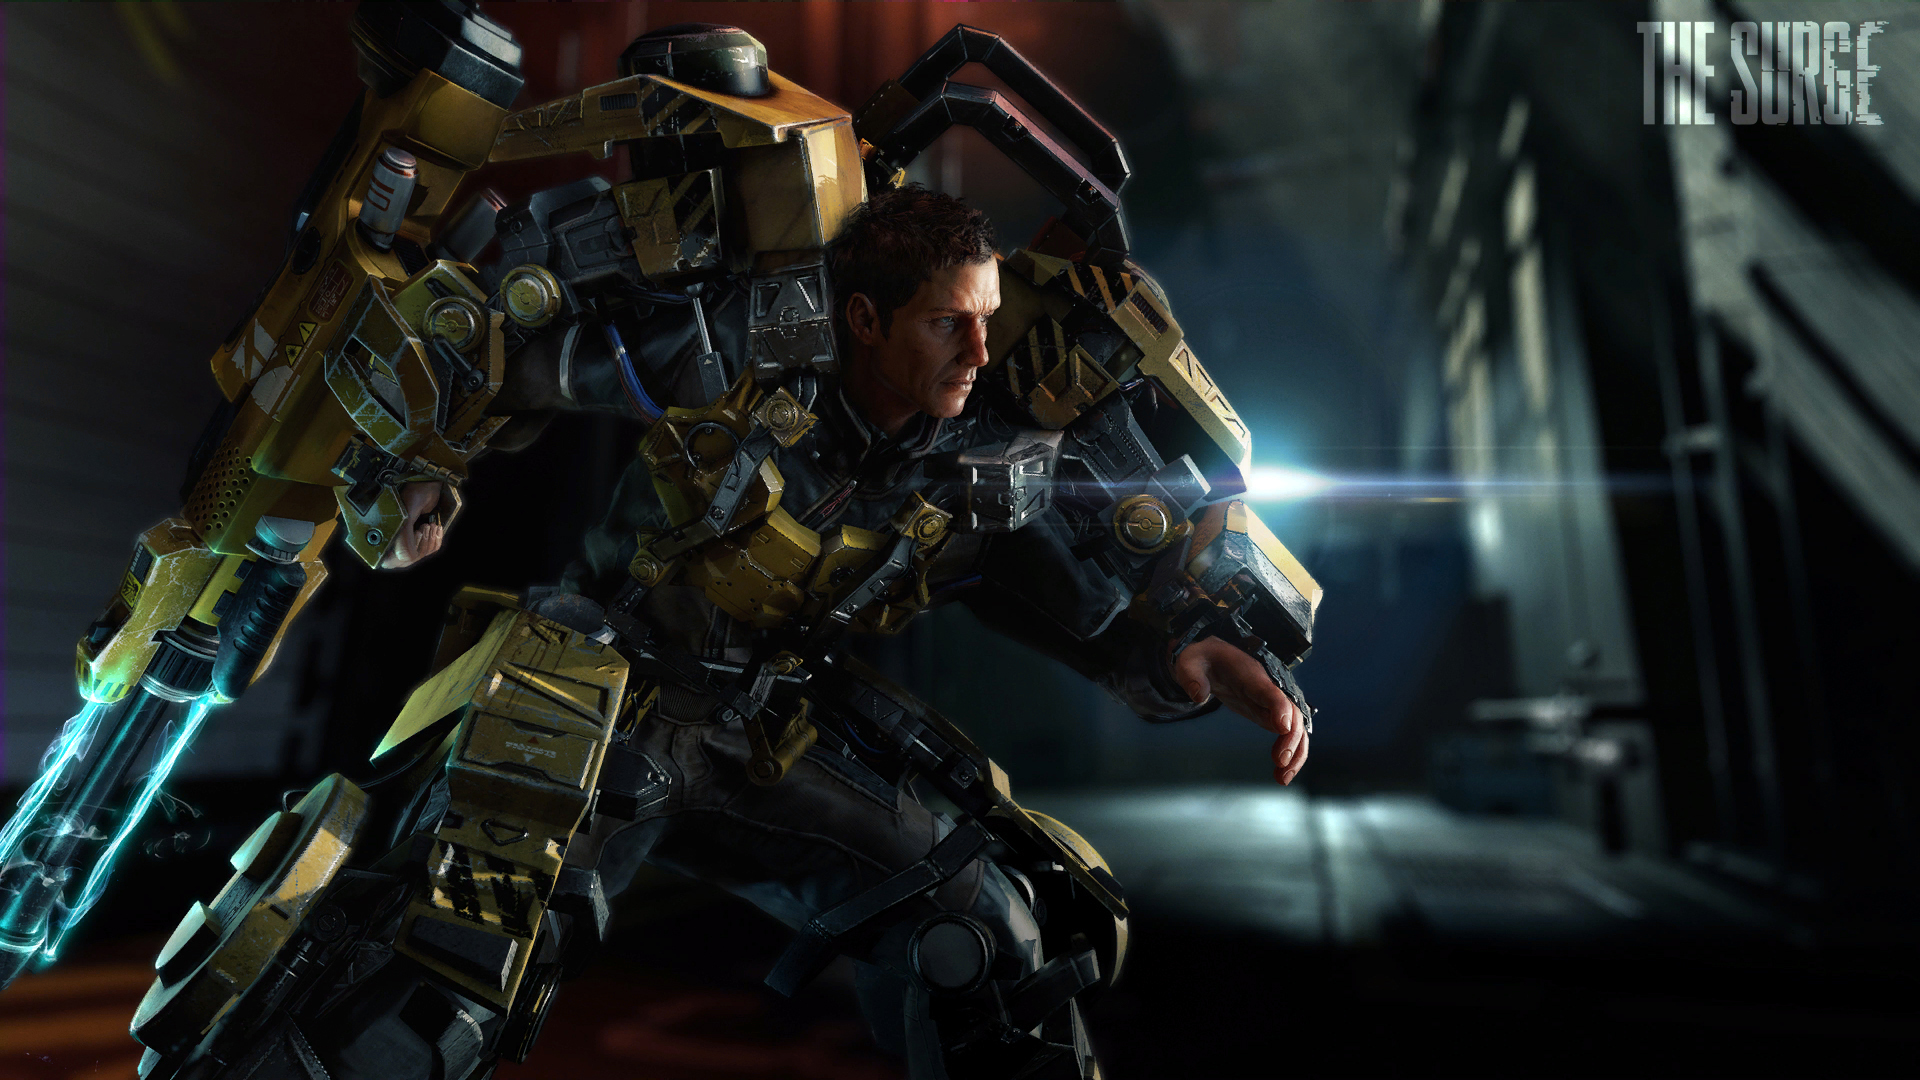 The Surge release date revealed- New trailer